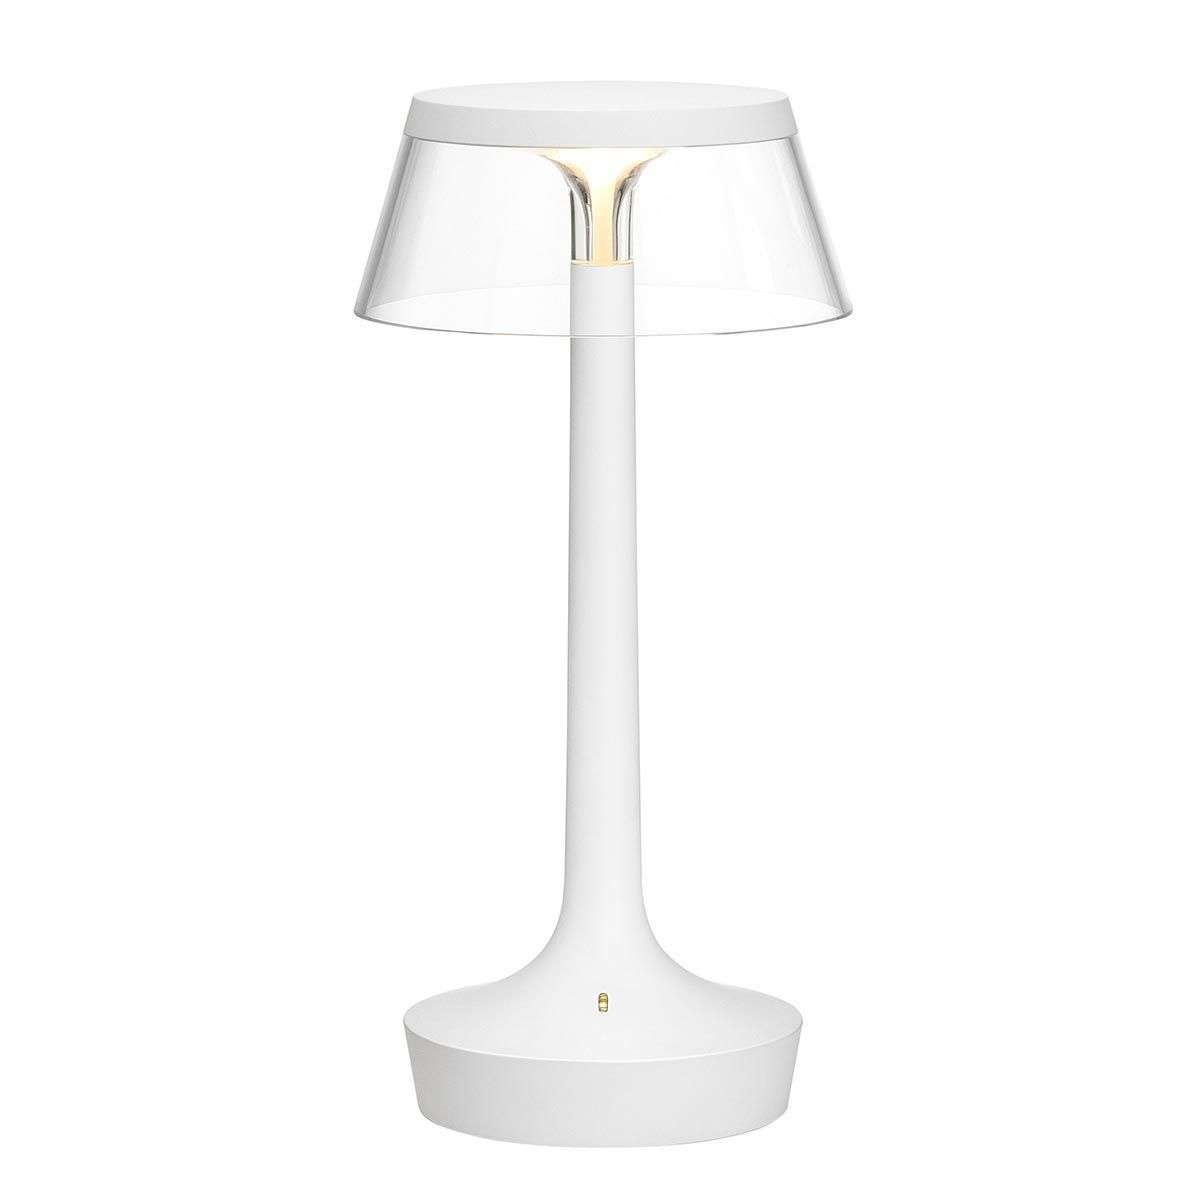 Rechargeable led table lamp bon jour unplugged lights rechargeable led table lamp bon jour unplugged 3510379 31 aloadofball Gallery